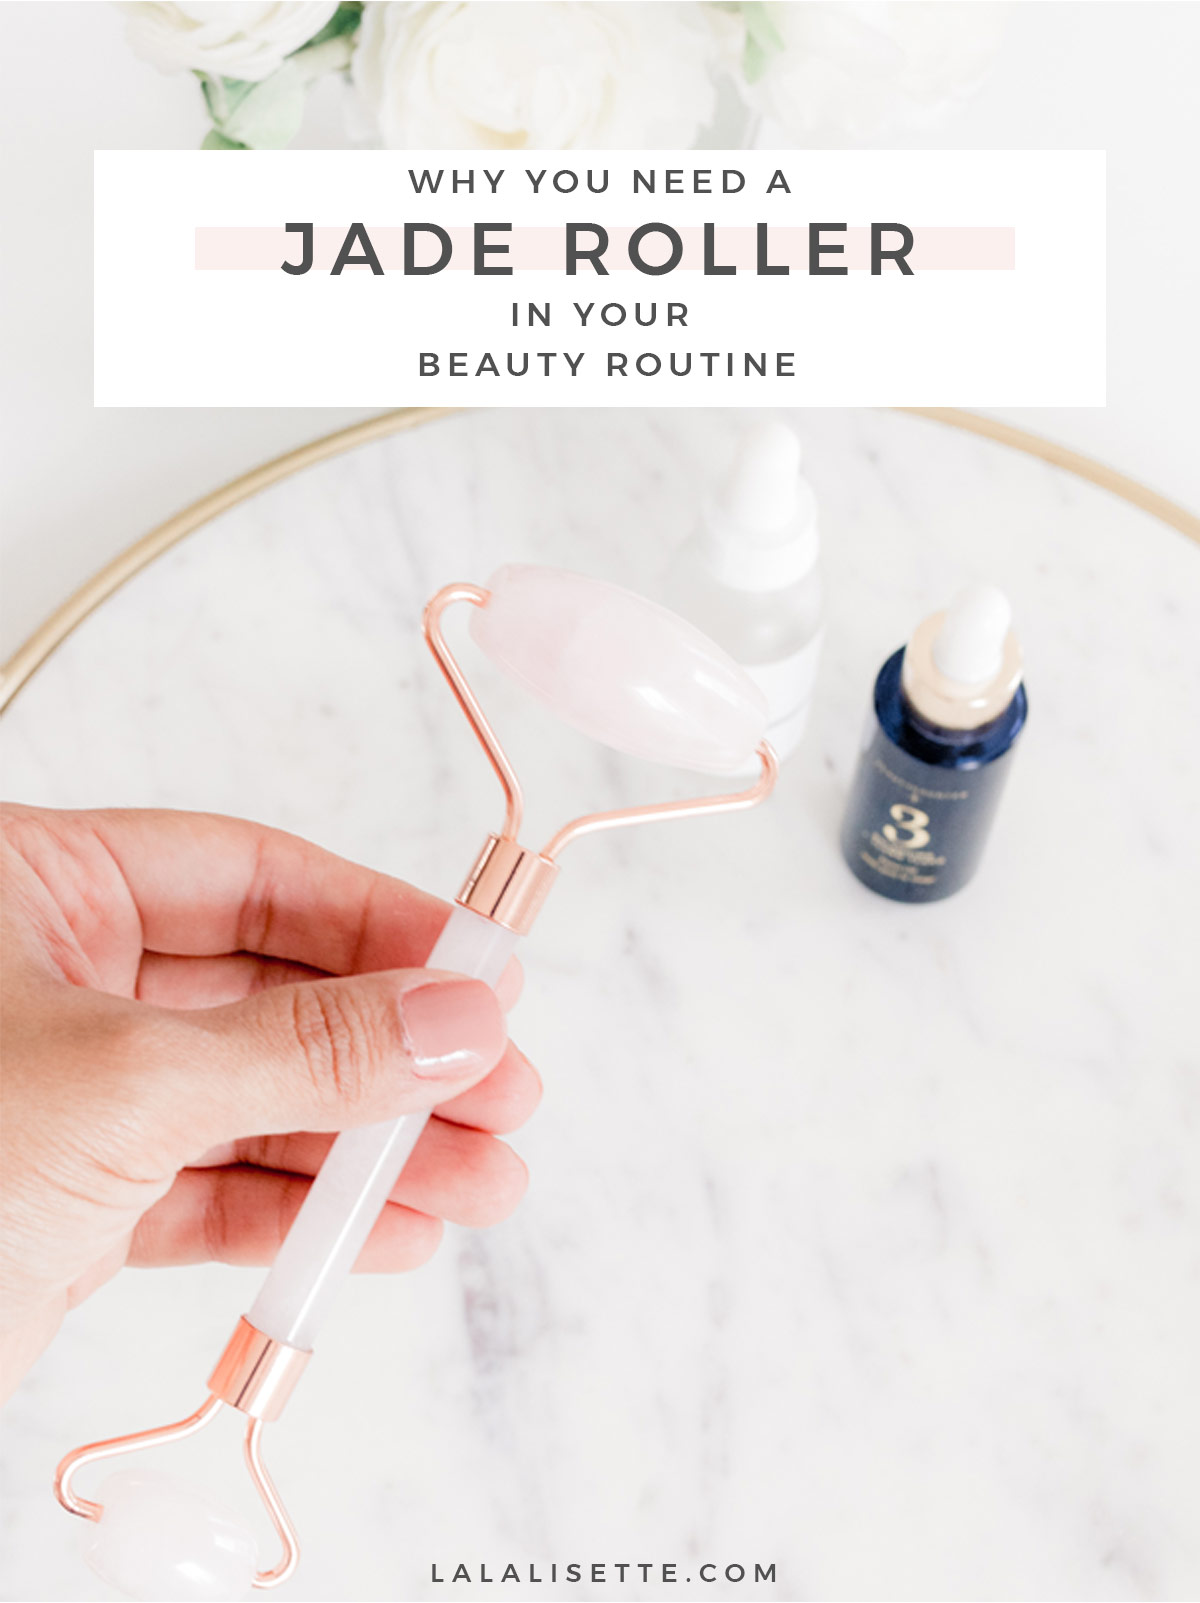 Image of rose quartz roller and woman rolling her skin with the text: Why You Need a Jade Roller in Your Beauty Routine at lalalisette.com